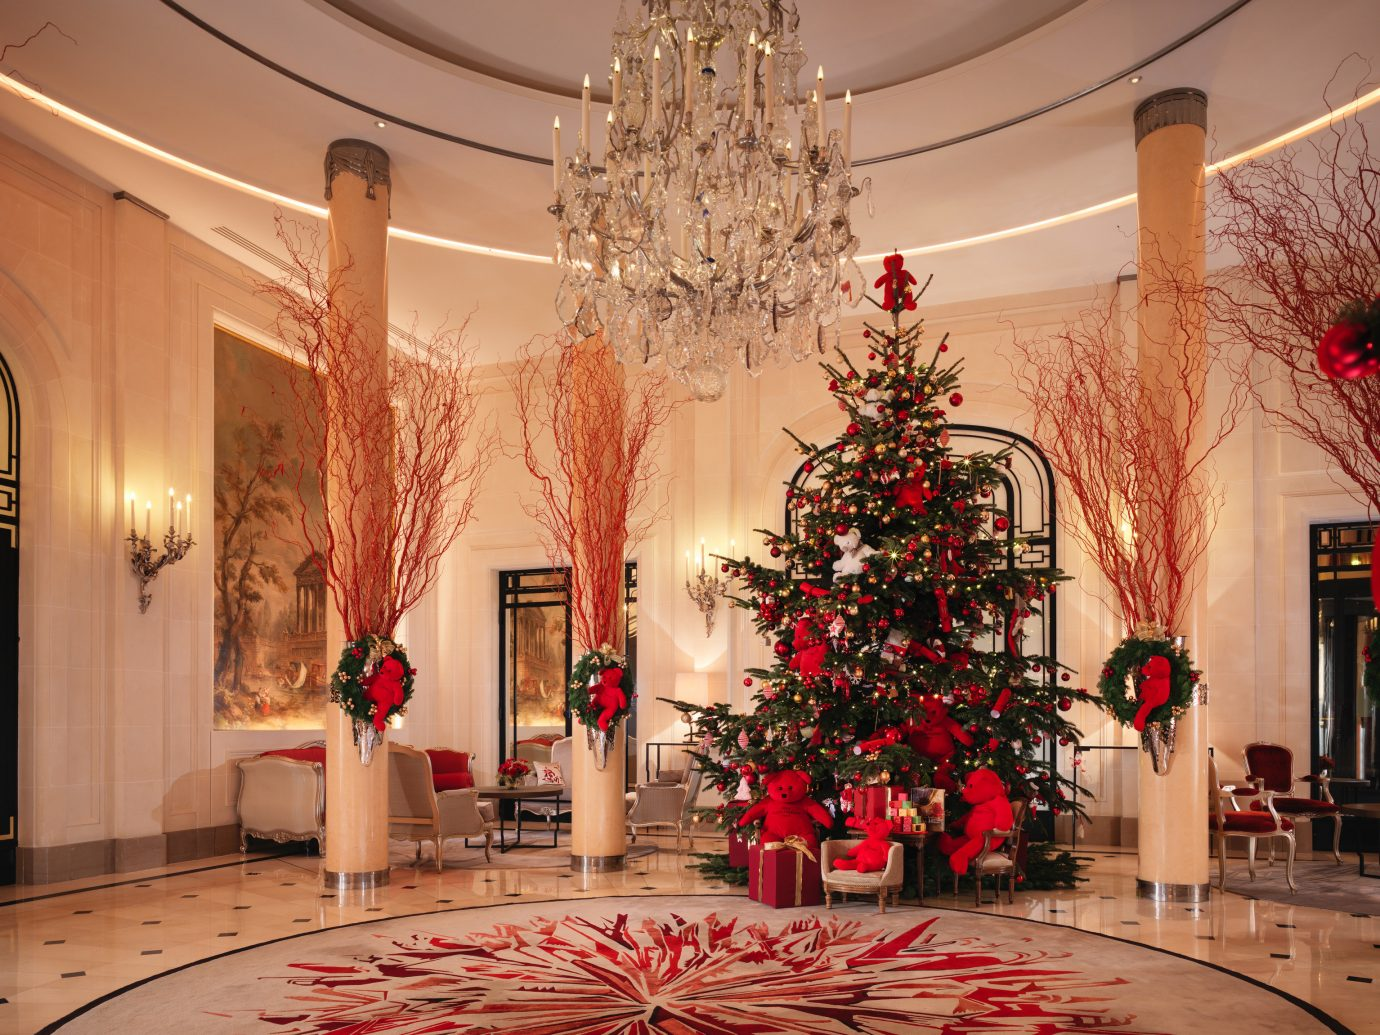 Hotels indoor Christmas christmas decoration Christmas tree floristry interior design Lobby plant ballroom function hall holiday decorated furniture